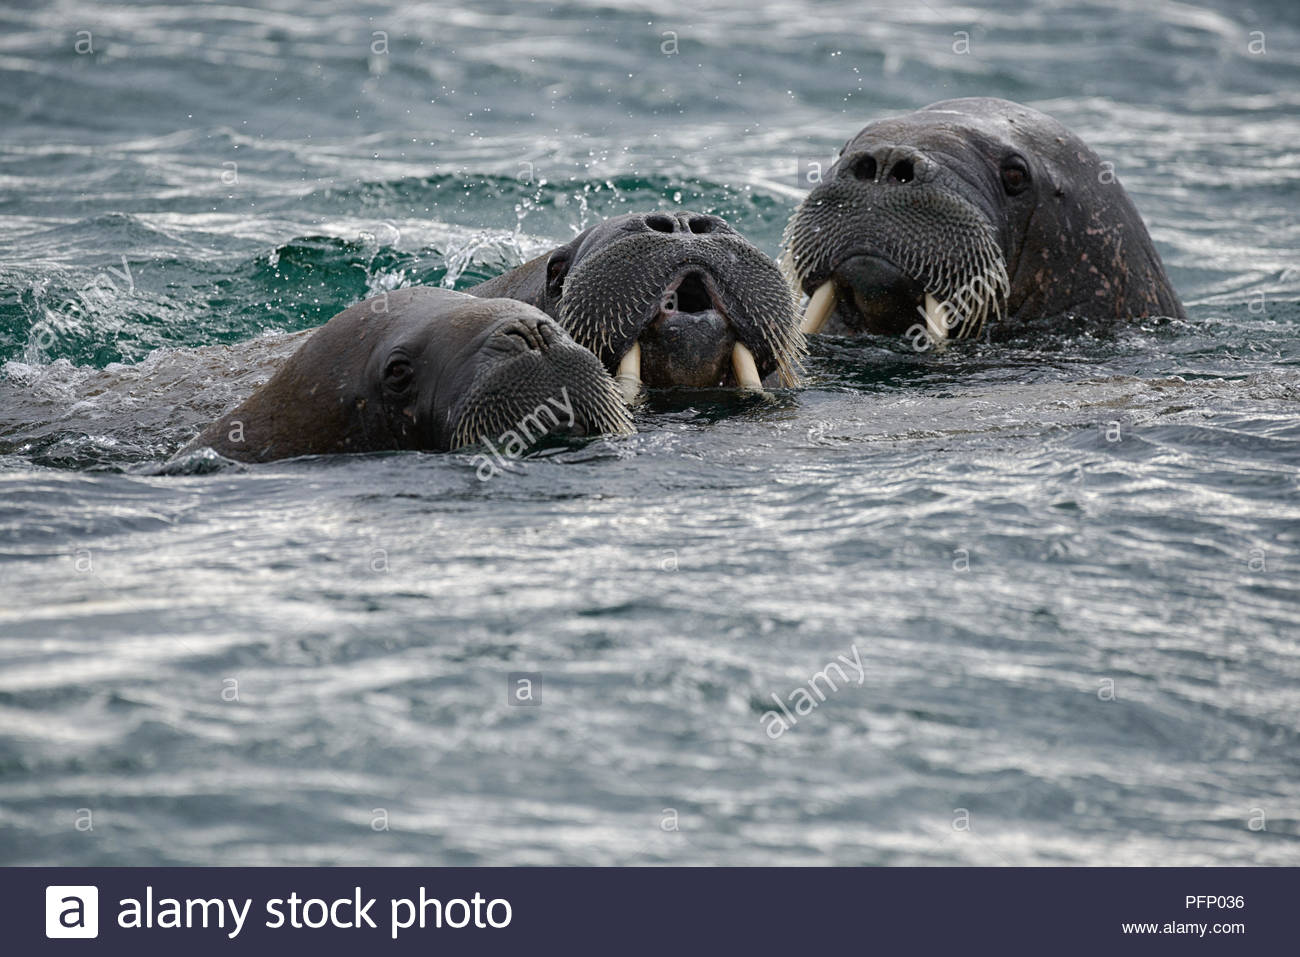 A group of walruses in sea at Torellnesfjellet, Nordaustlandet, Svalbard, Norway, 2018 - Stock Image